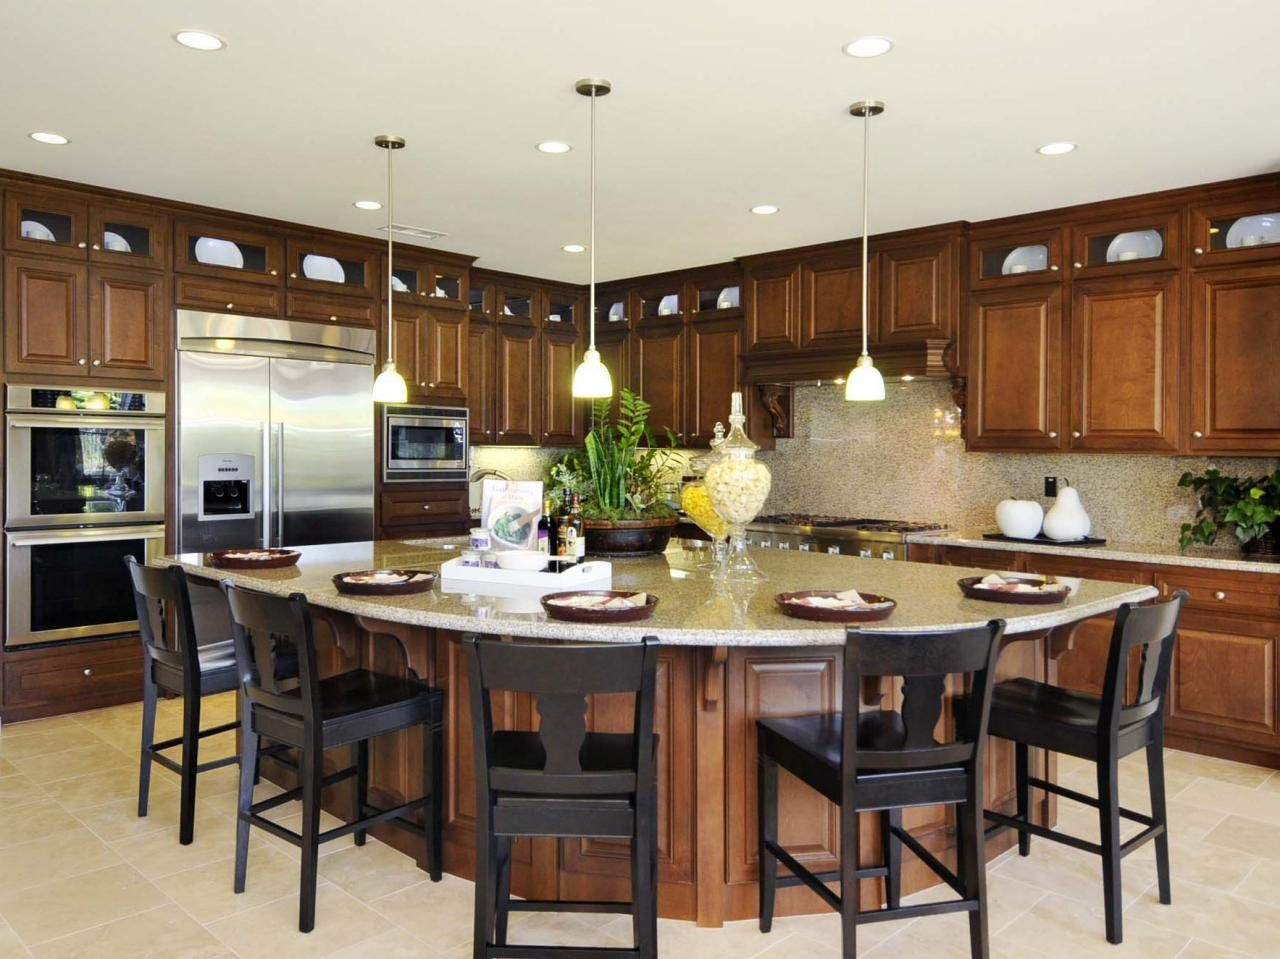 Kitchen Island Design Ideas: Pictures, Options & Tips | Island ...